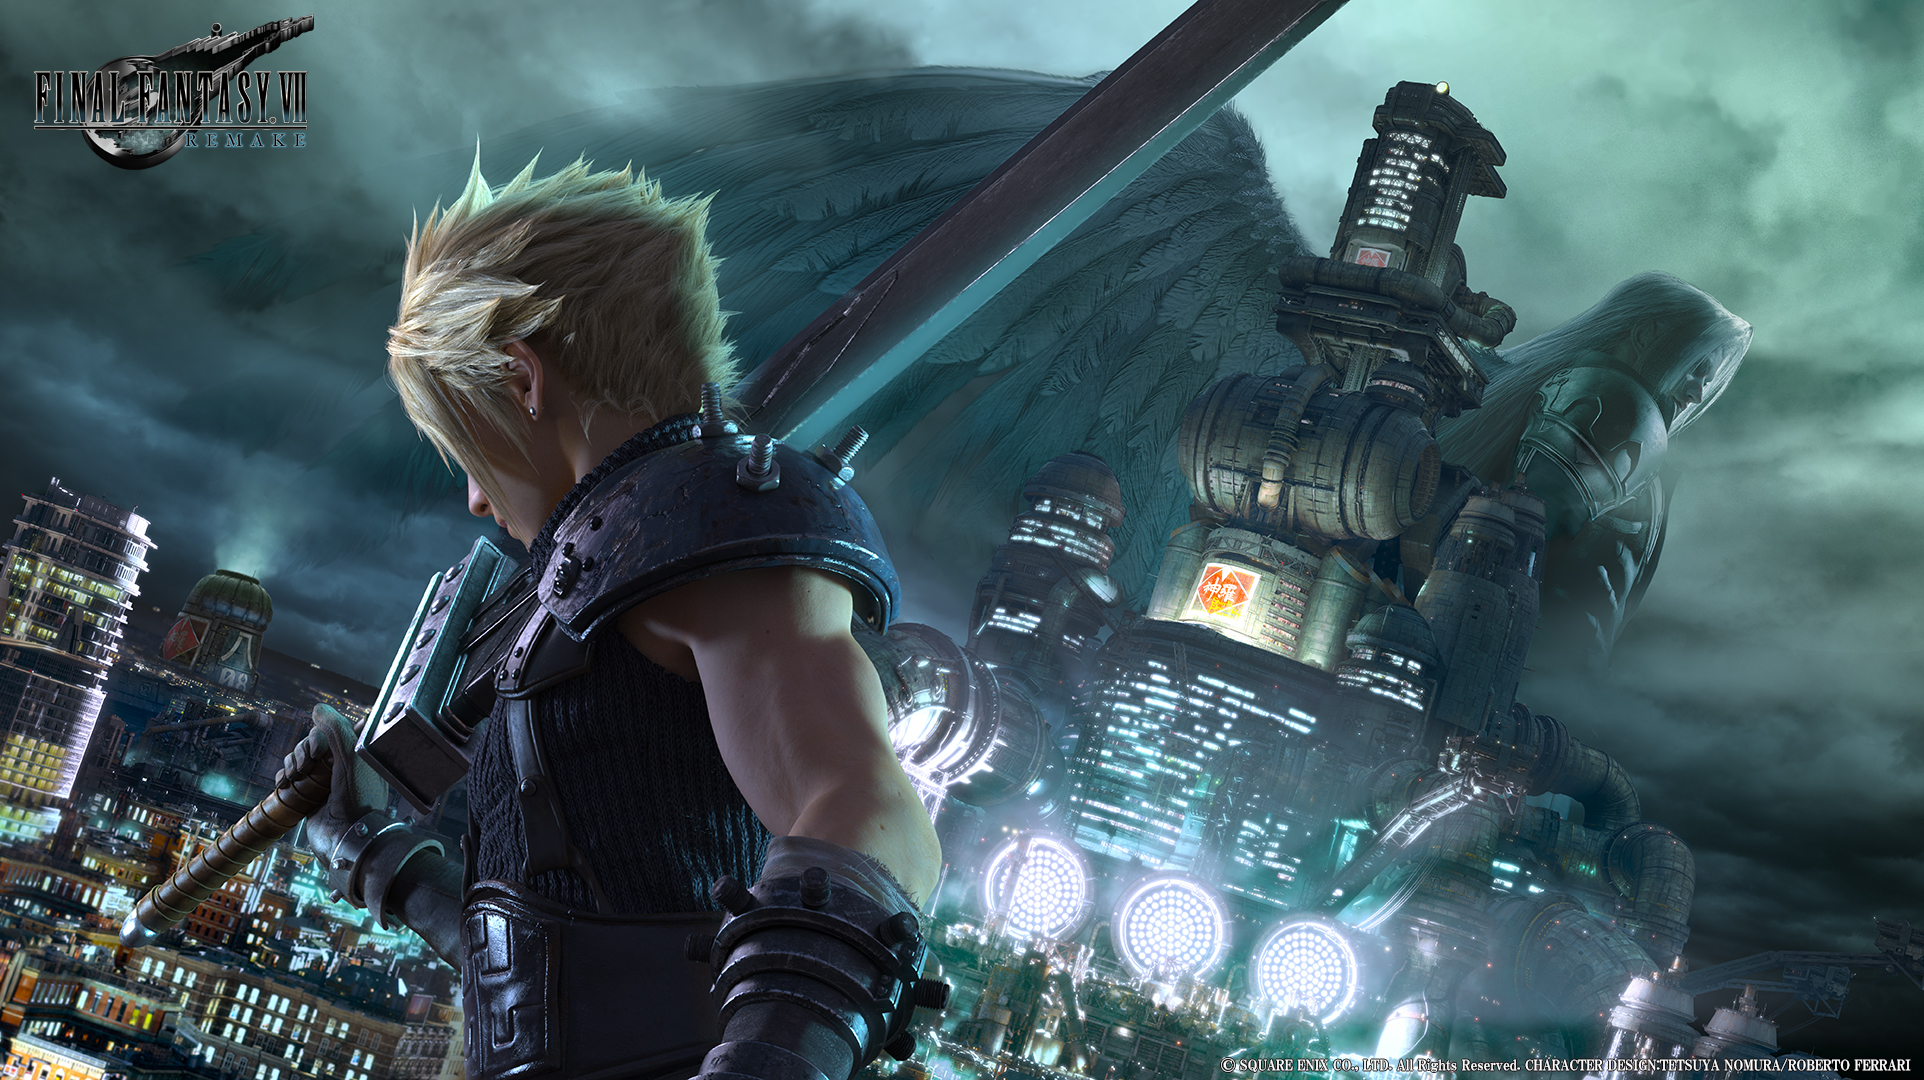 The Release Date | What We Already Know About the Final Fantasy VII Remake | Gammicks